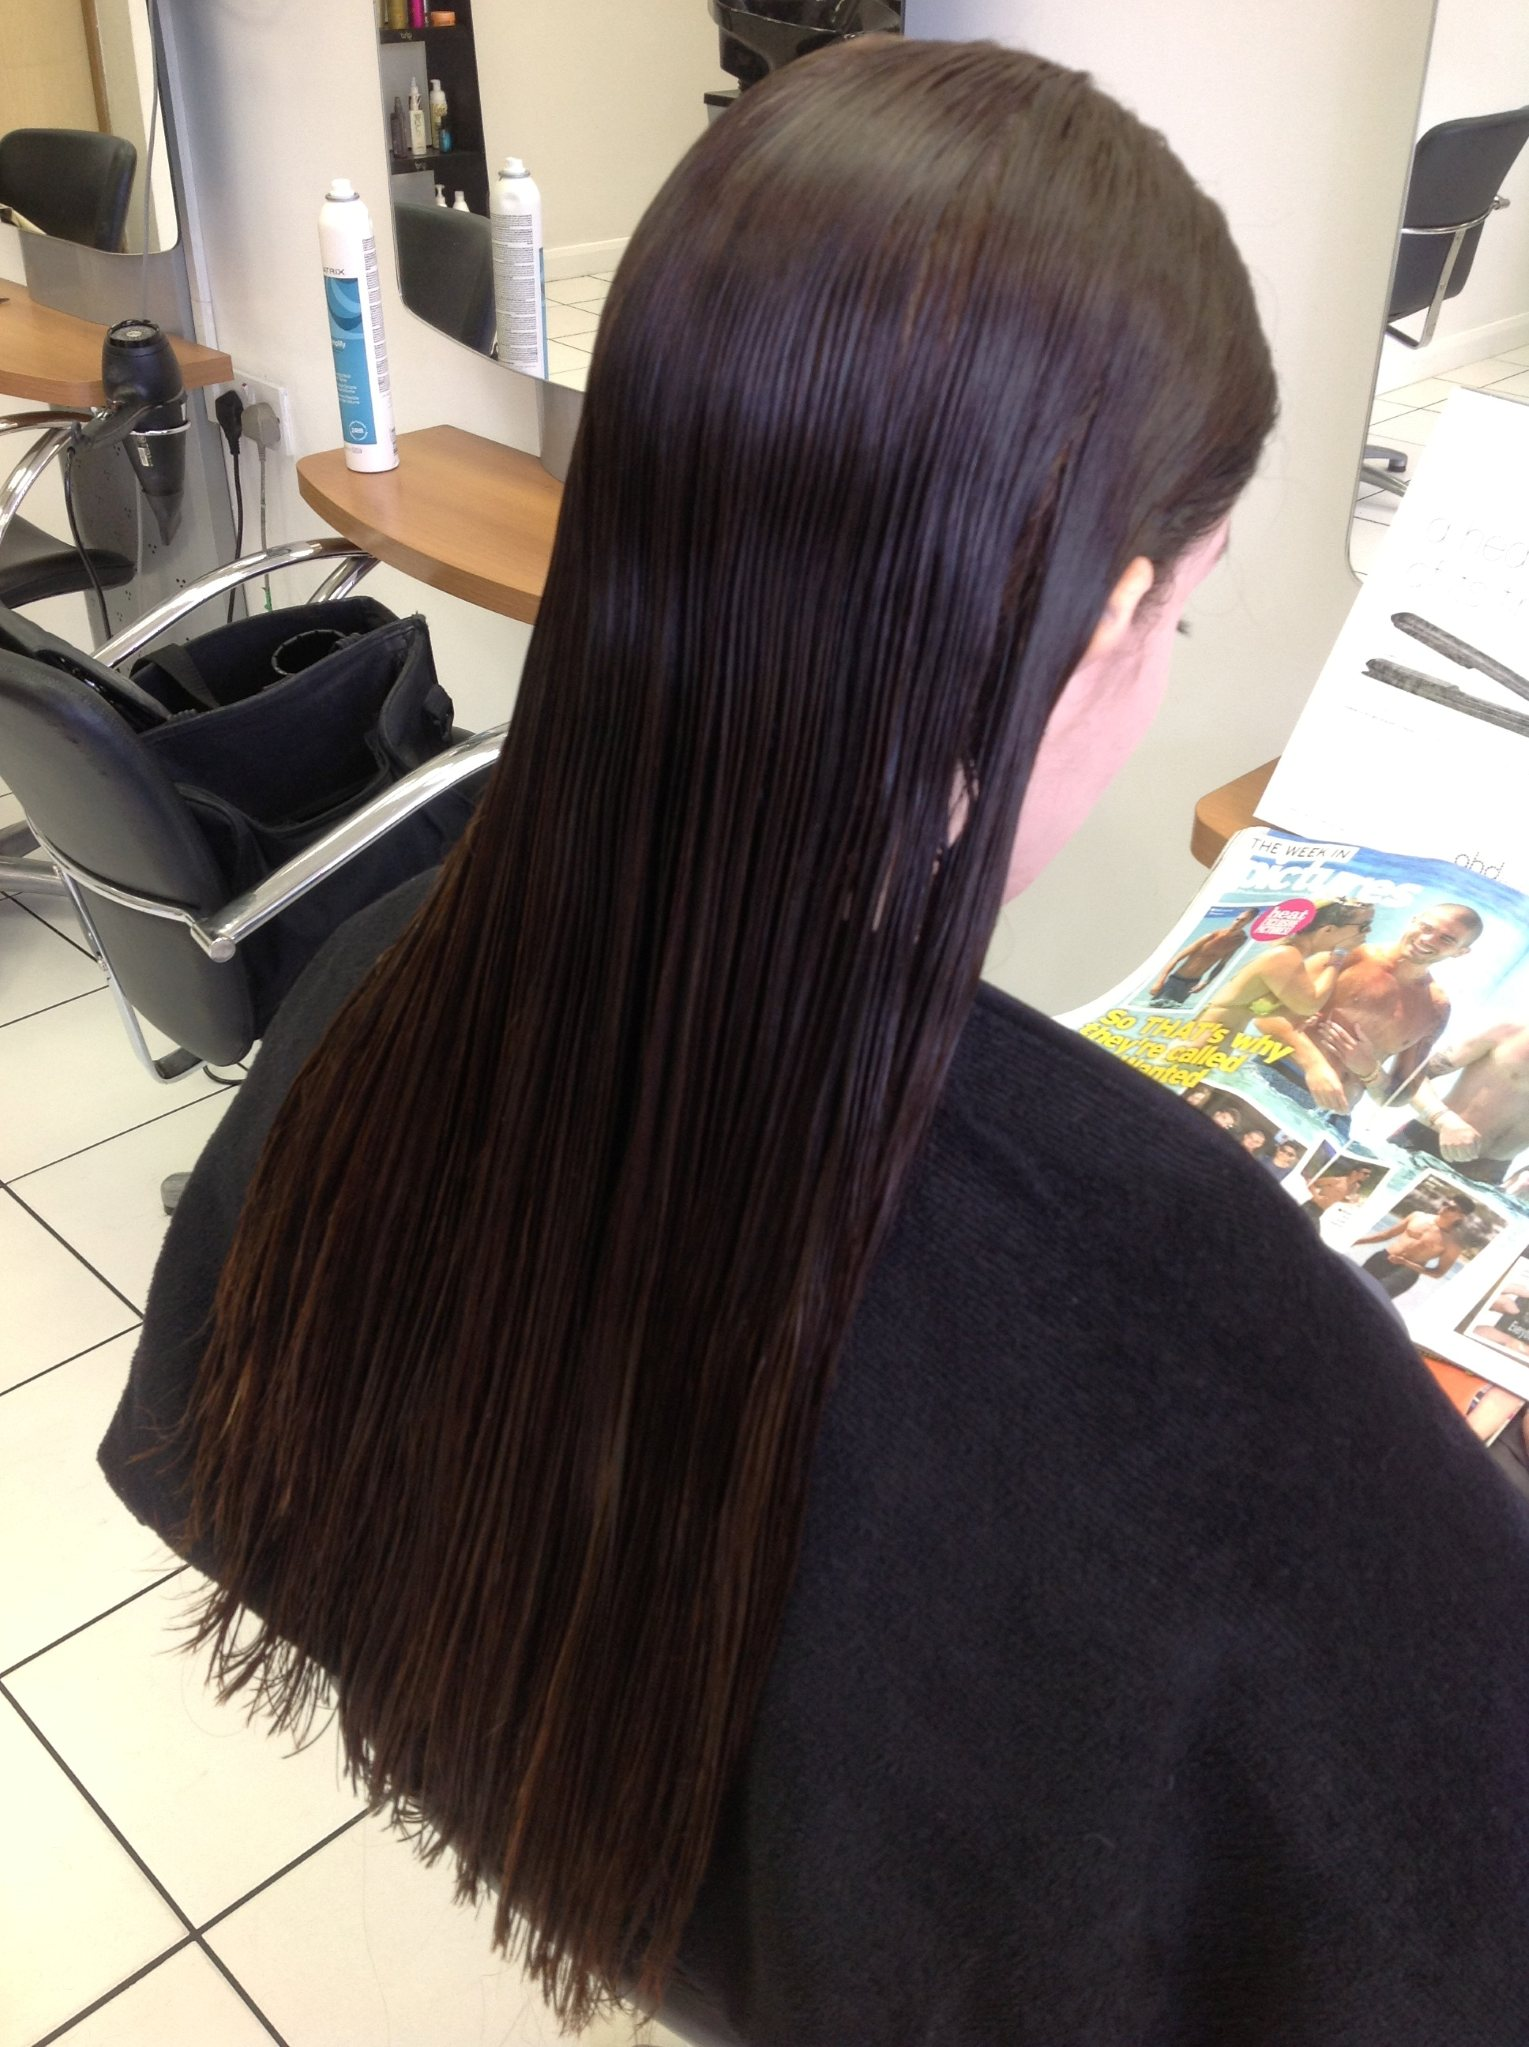 Brazilian Blow Dry - During